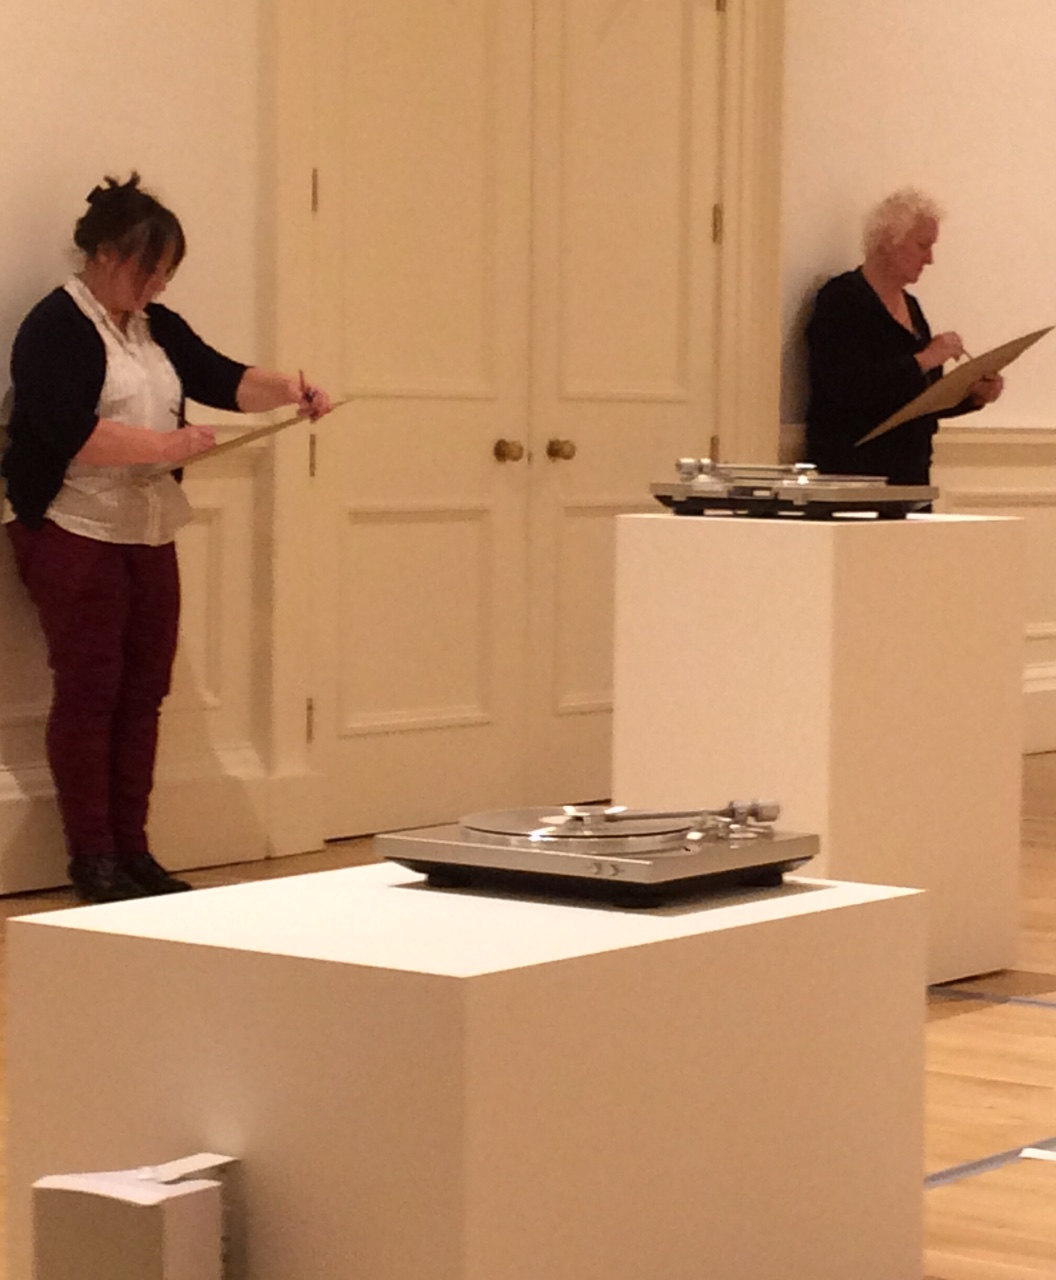 Two people sketching in the Gallery of Modern Art surrounded by turntables on plinths